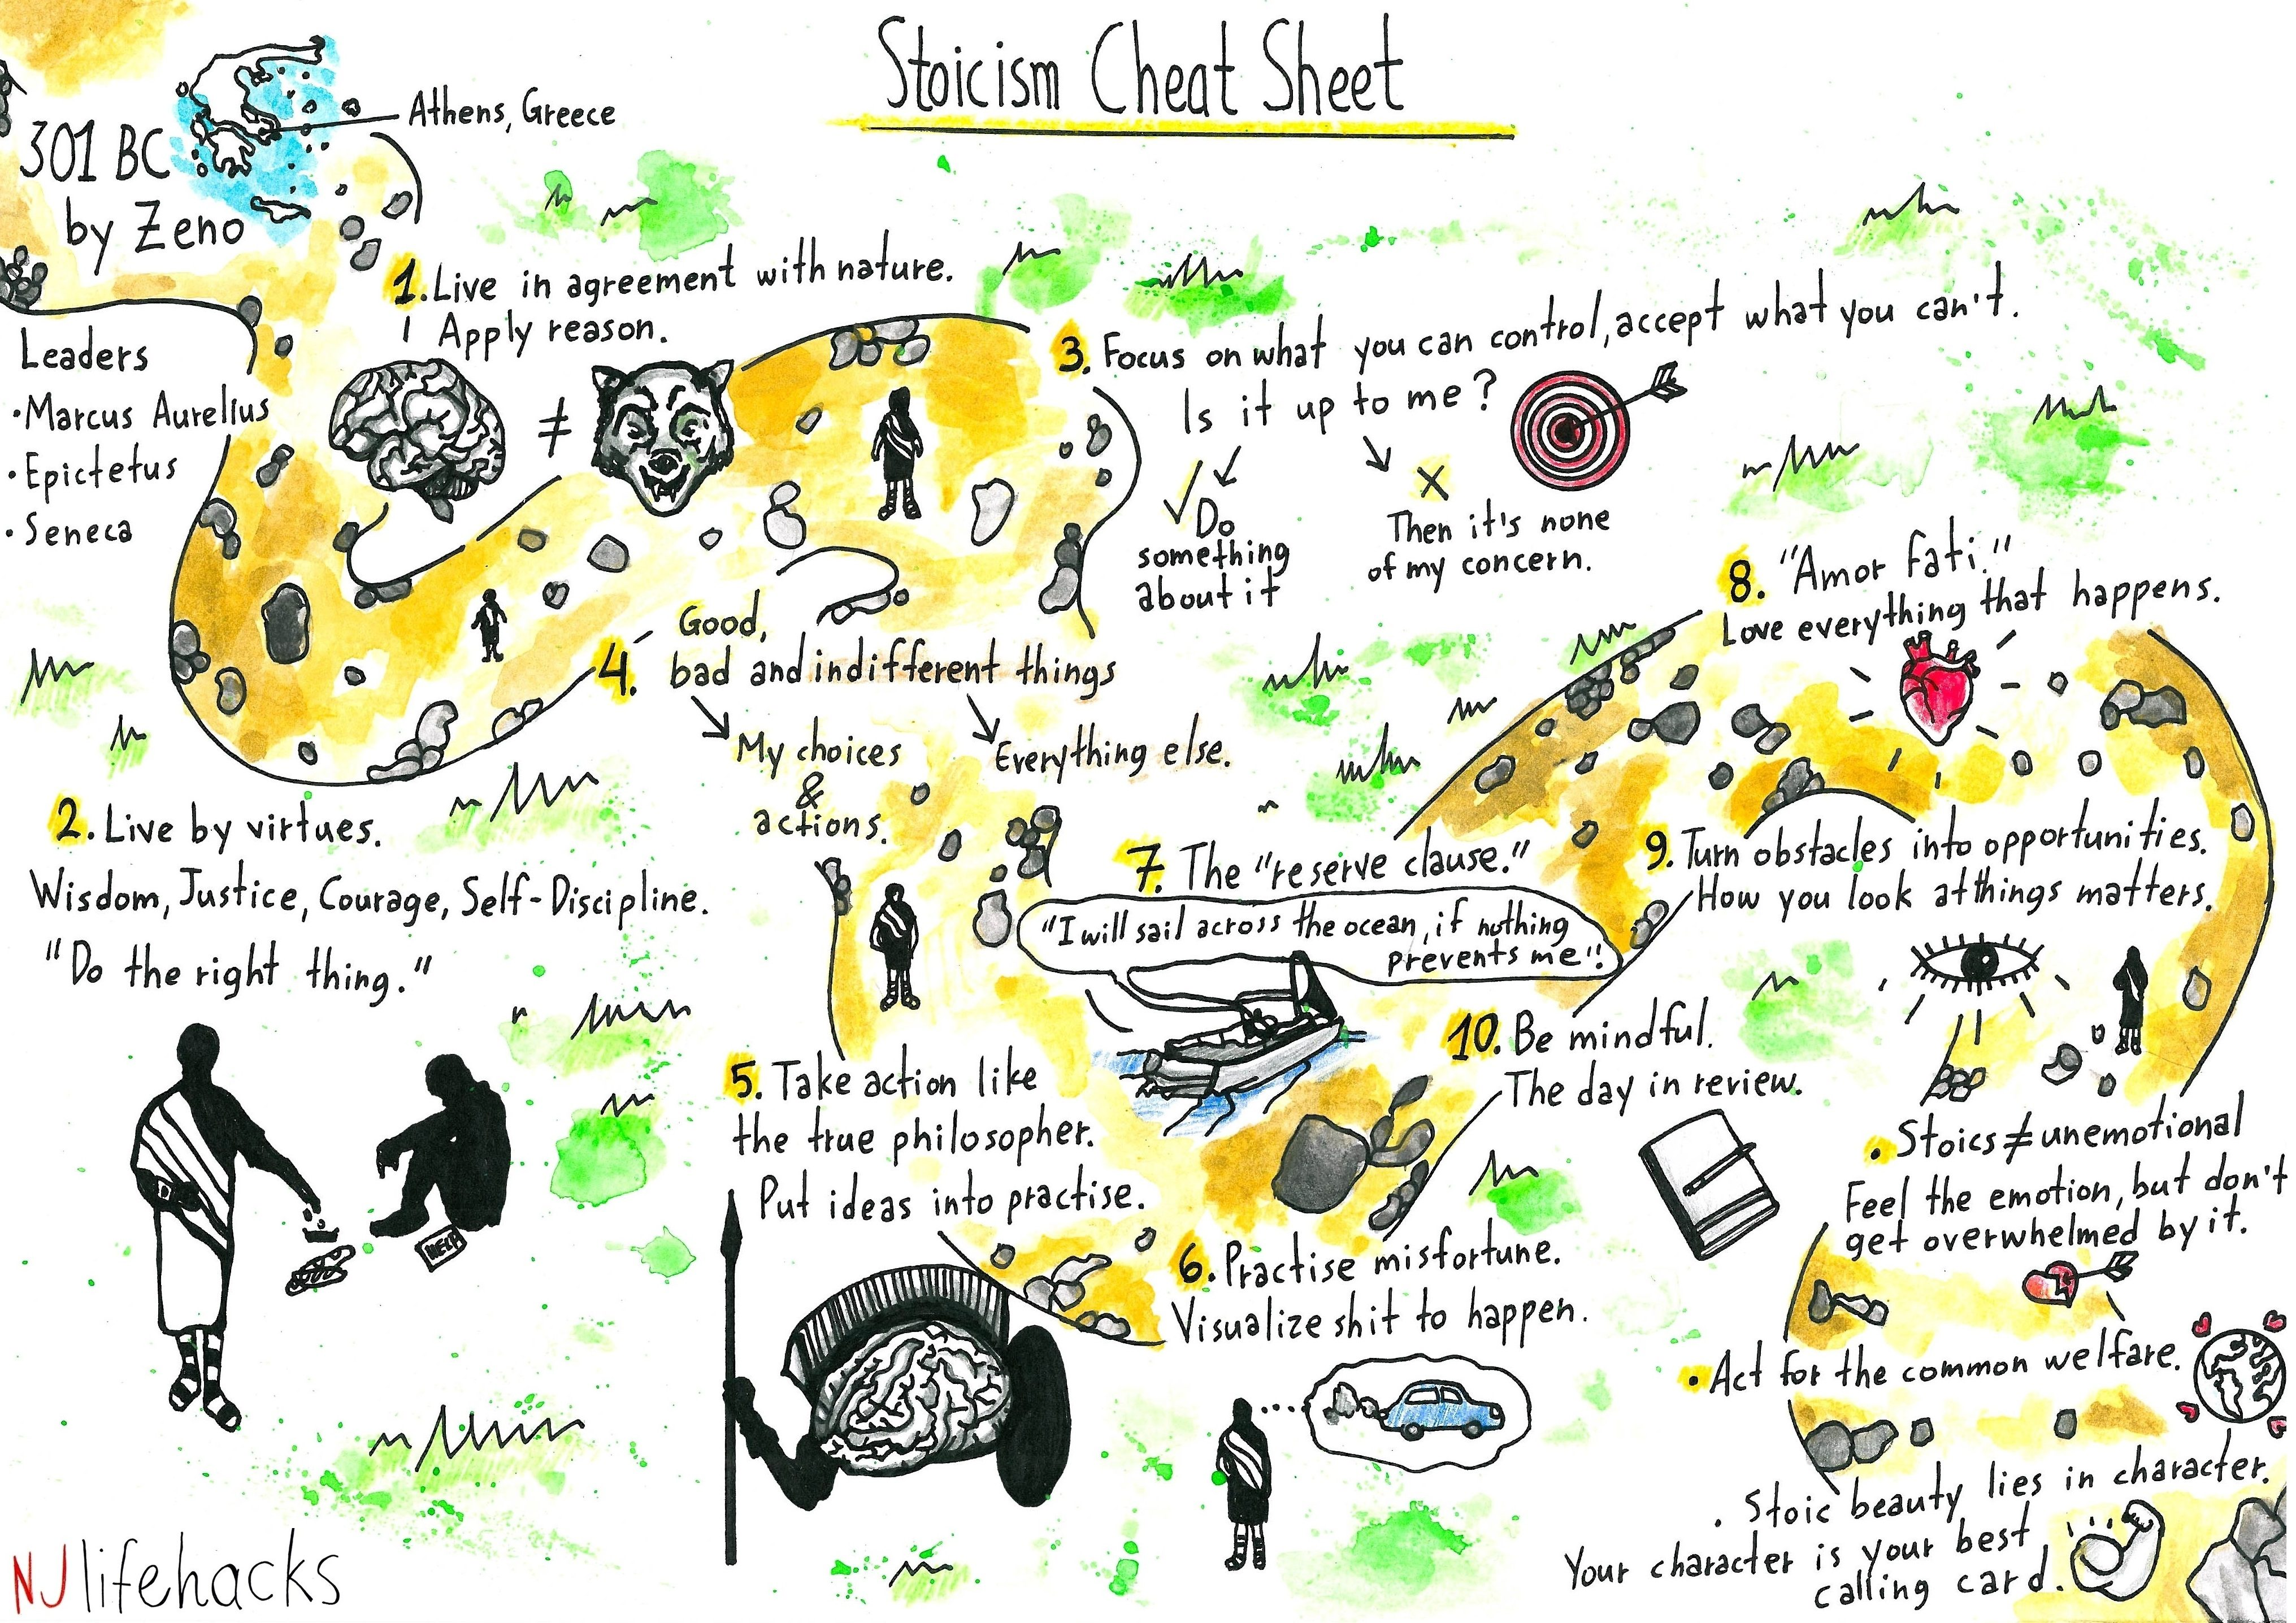 What Is Stoicism The Stoicism Cheat Sheet Image Stoicism